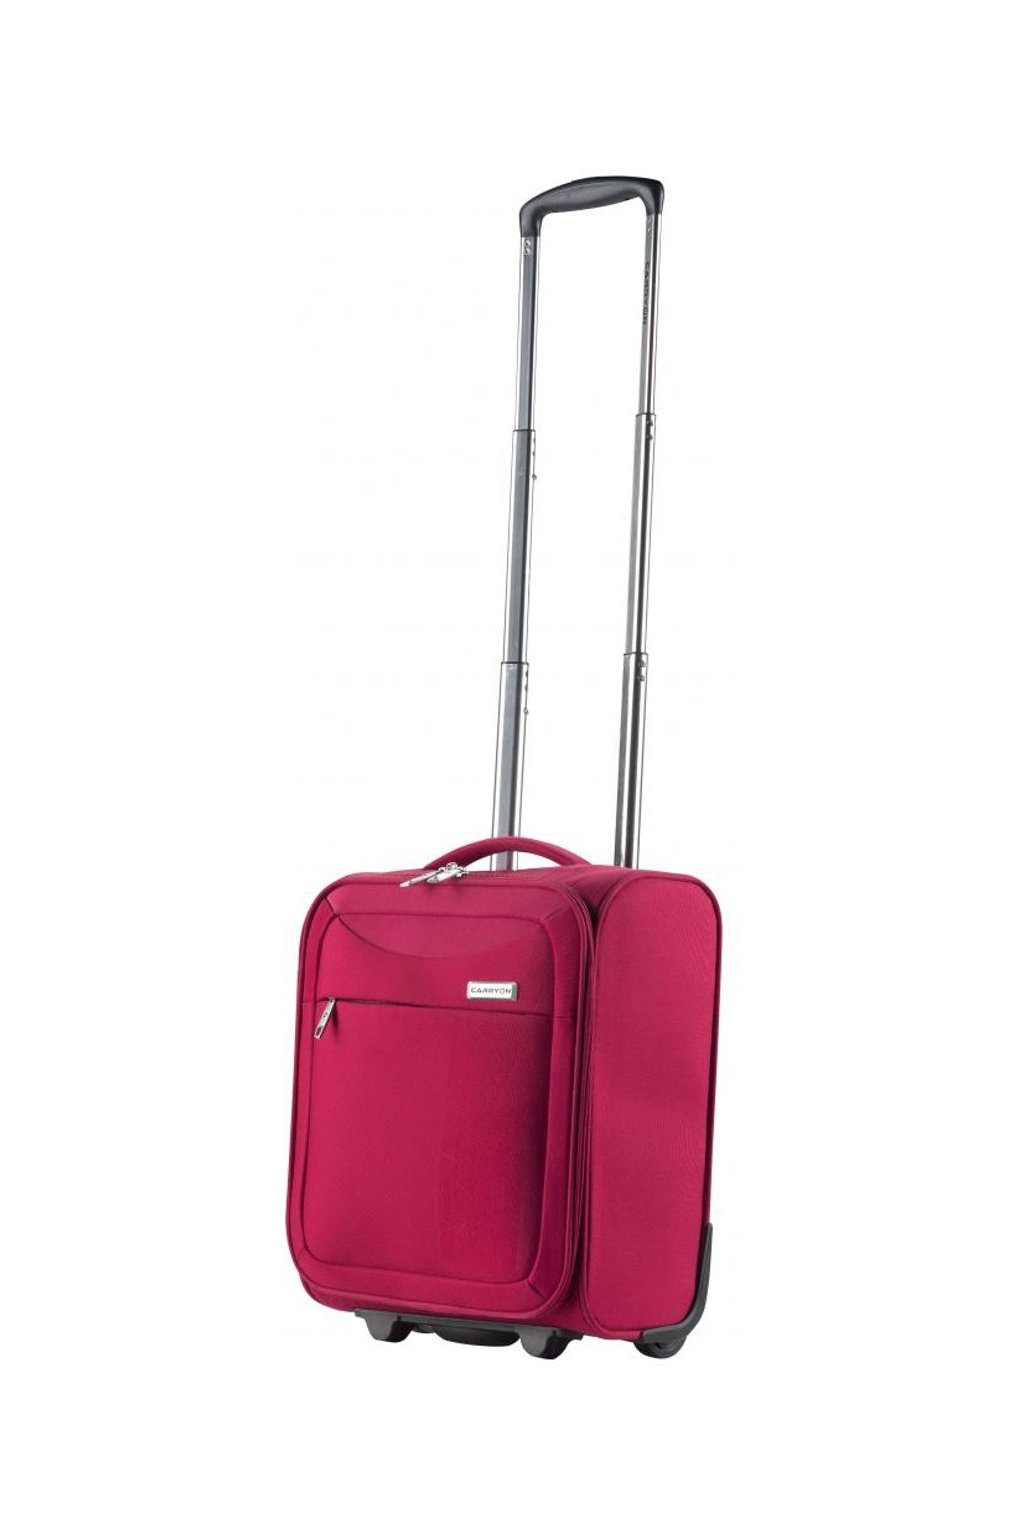 kufrland carryon airunderseat red (1)